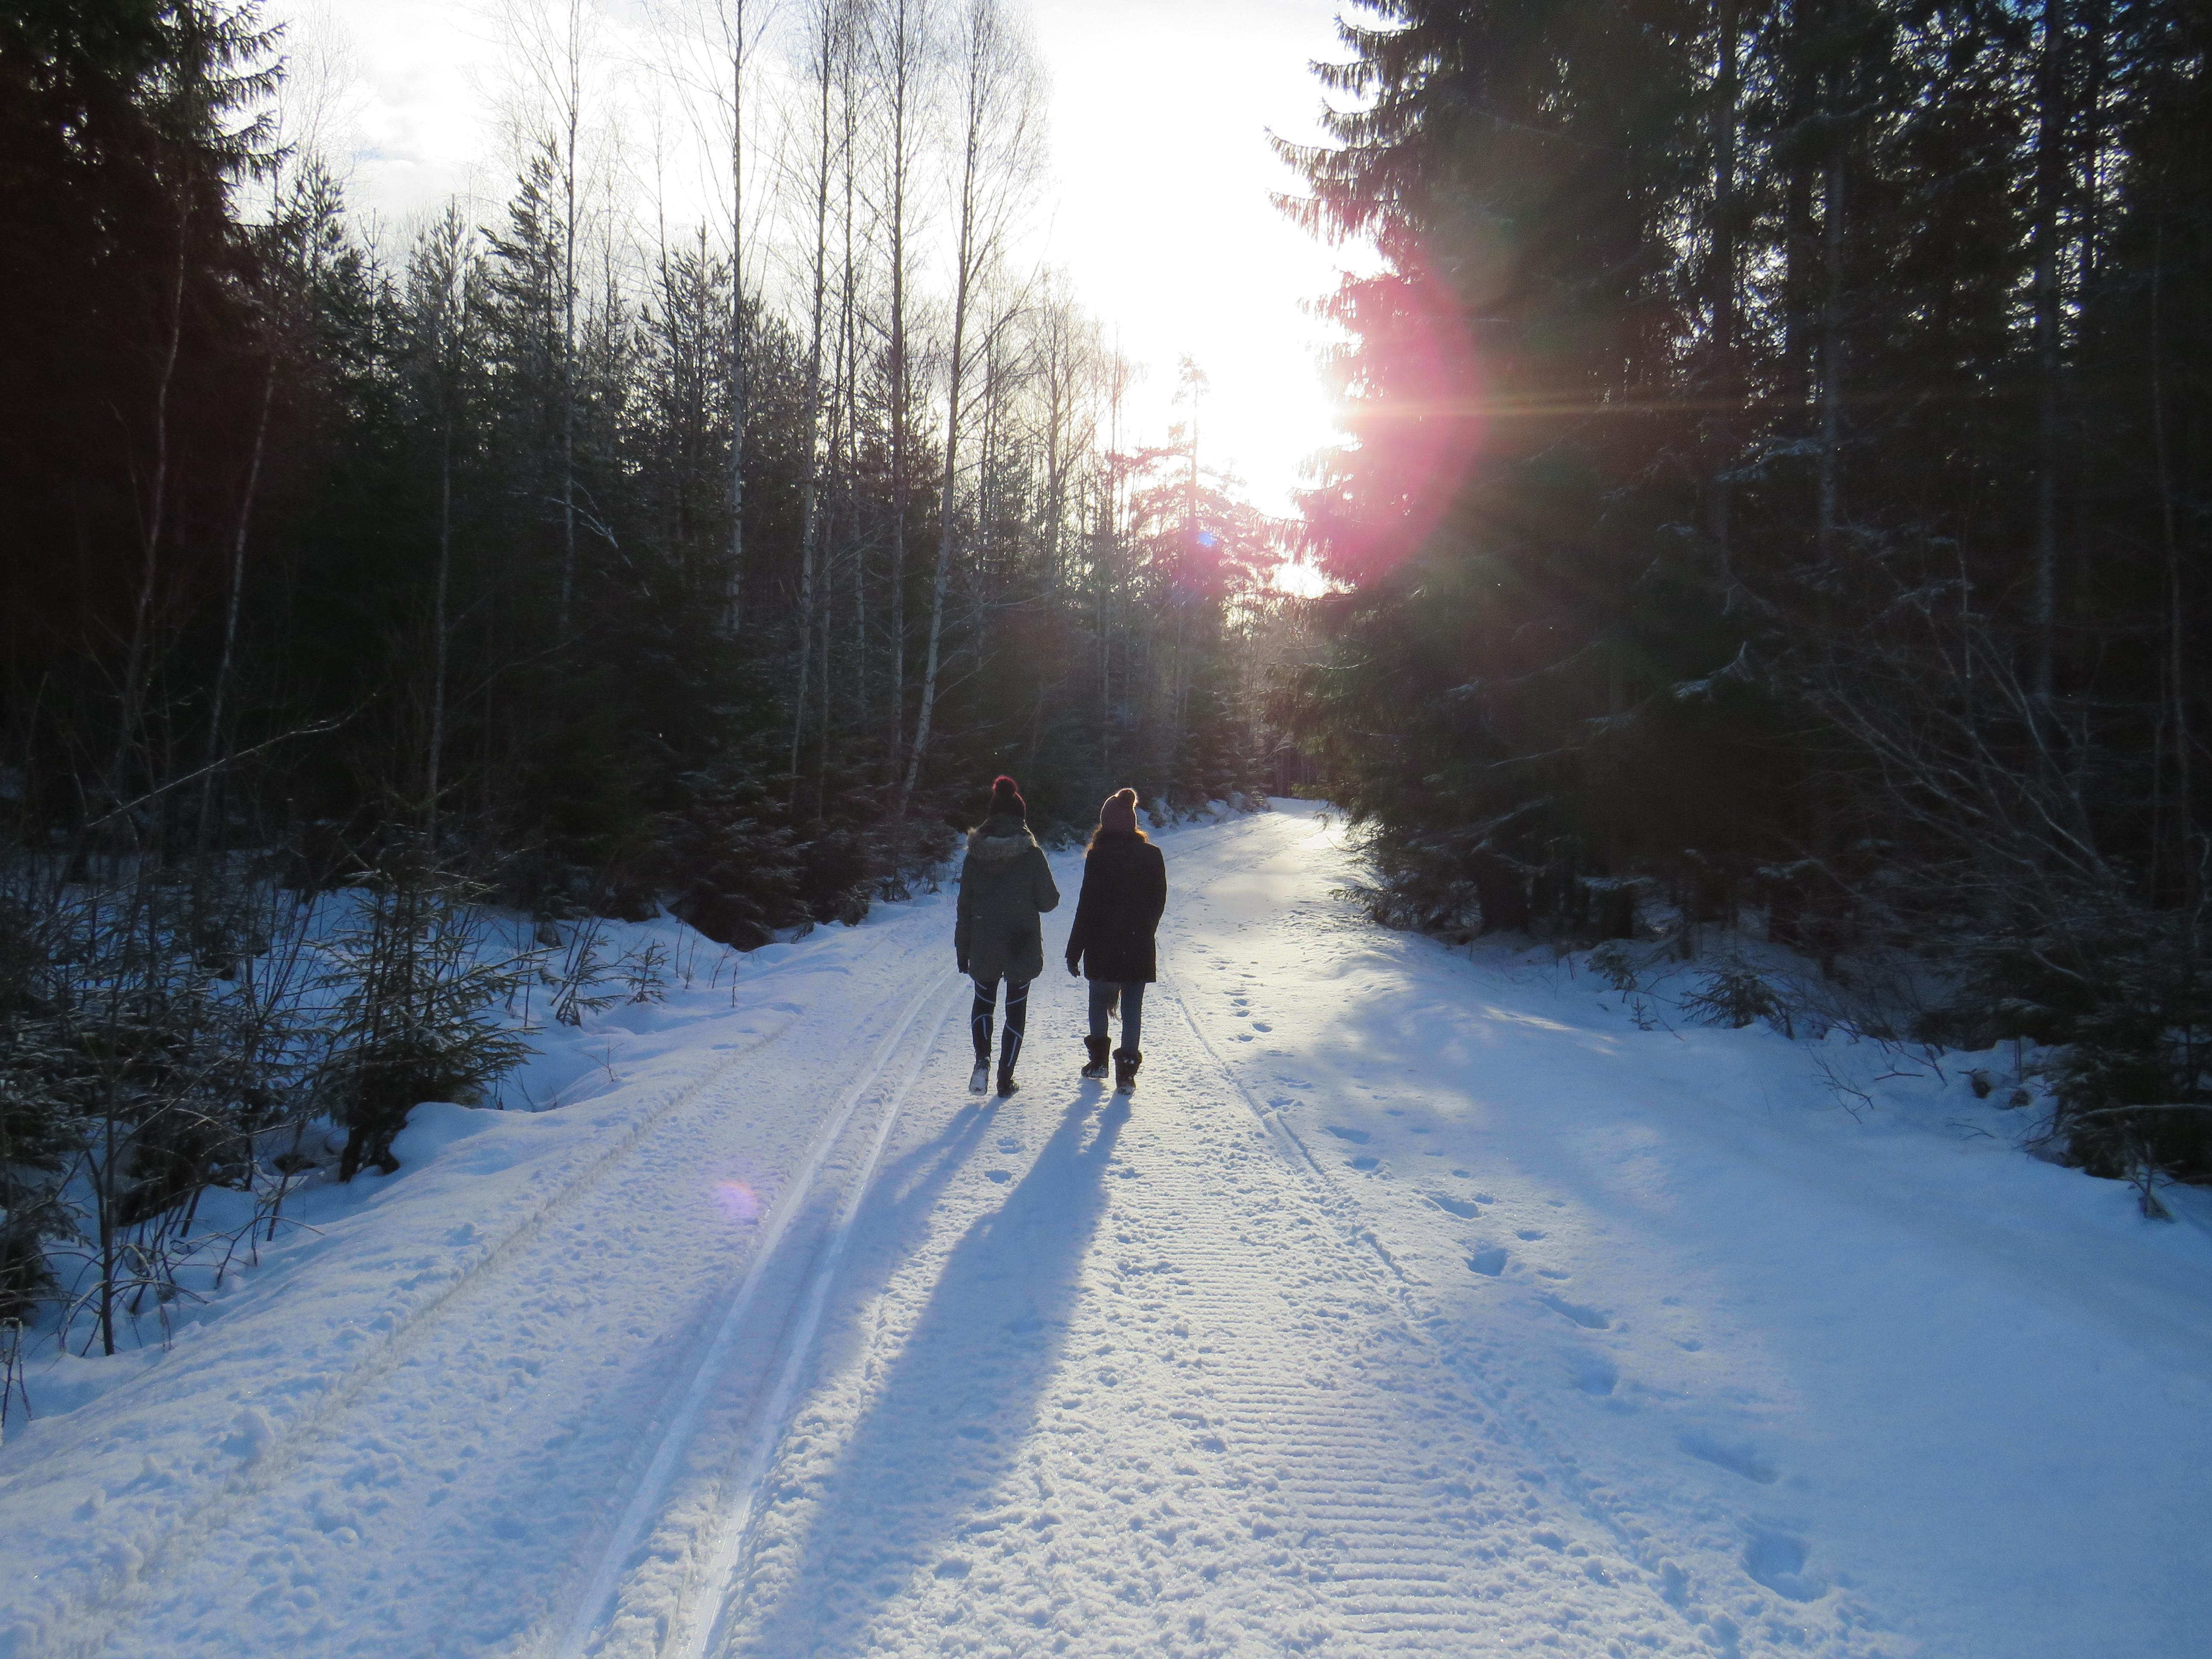 Back to Nature, Yoga in a Winter Wonderland